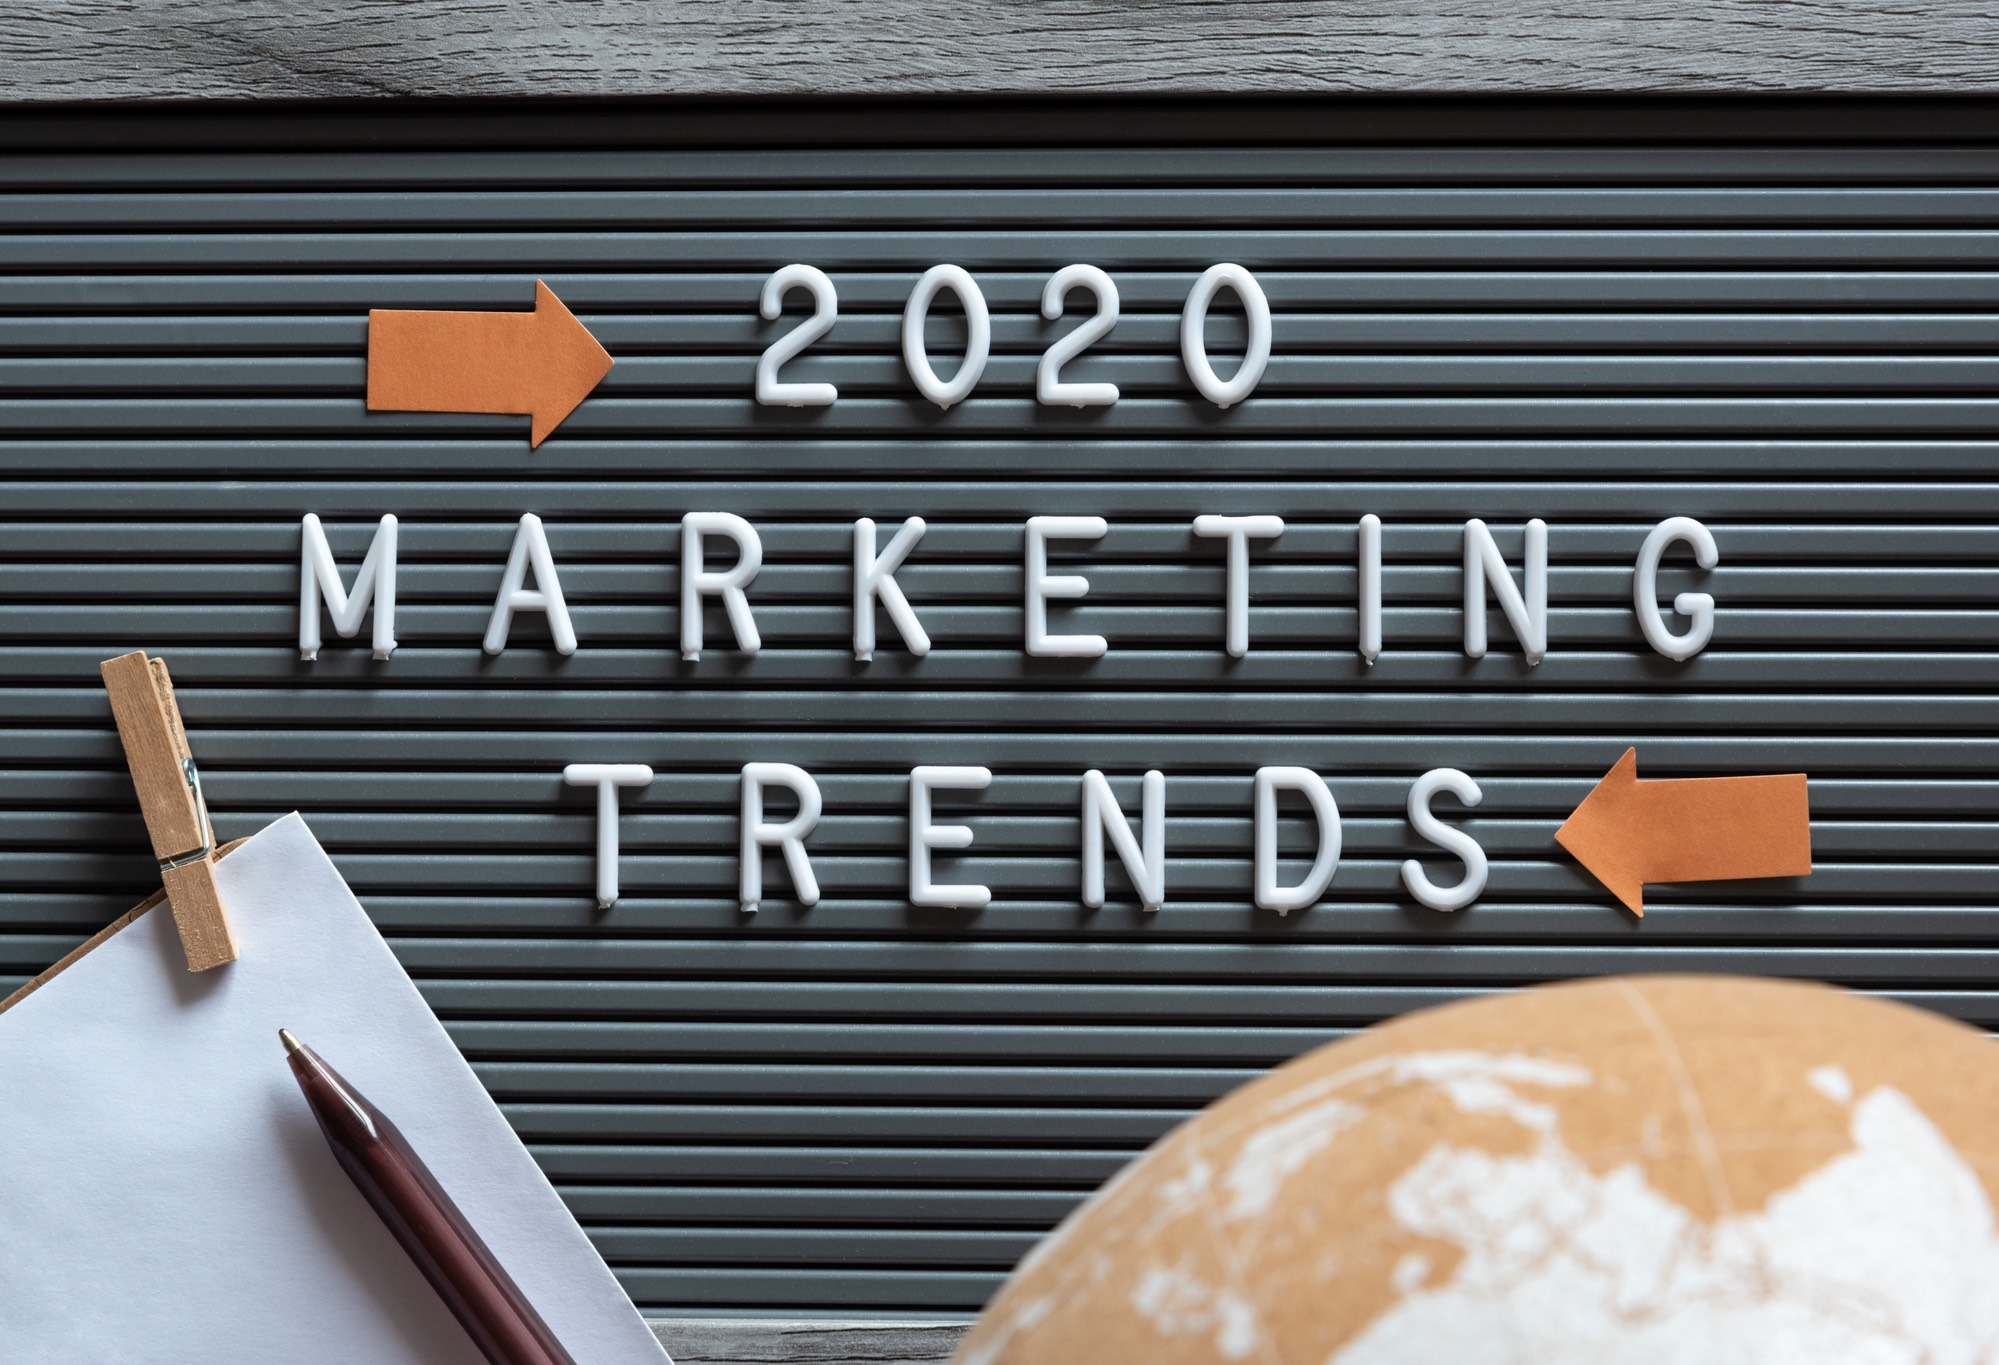 2020 digital marketing trends pin-up board